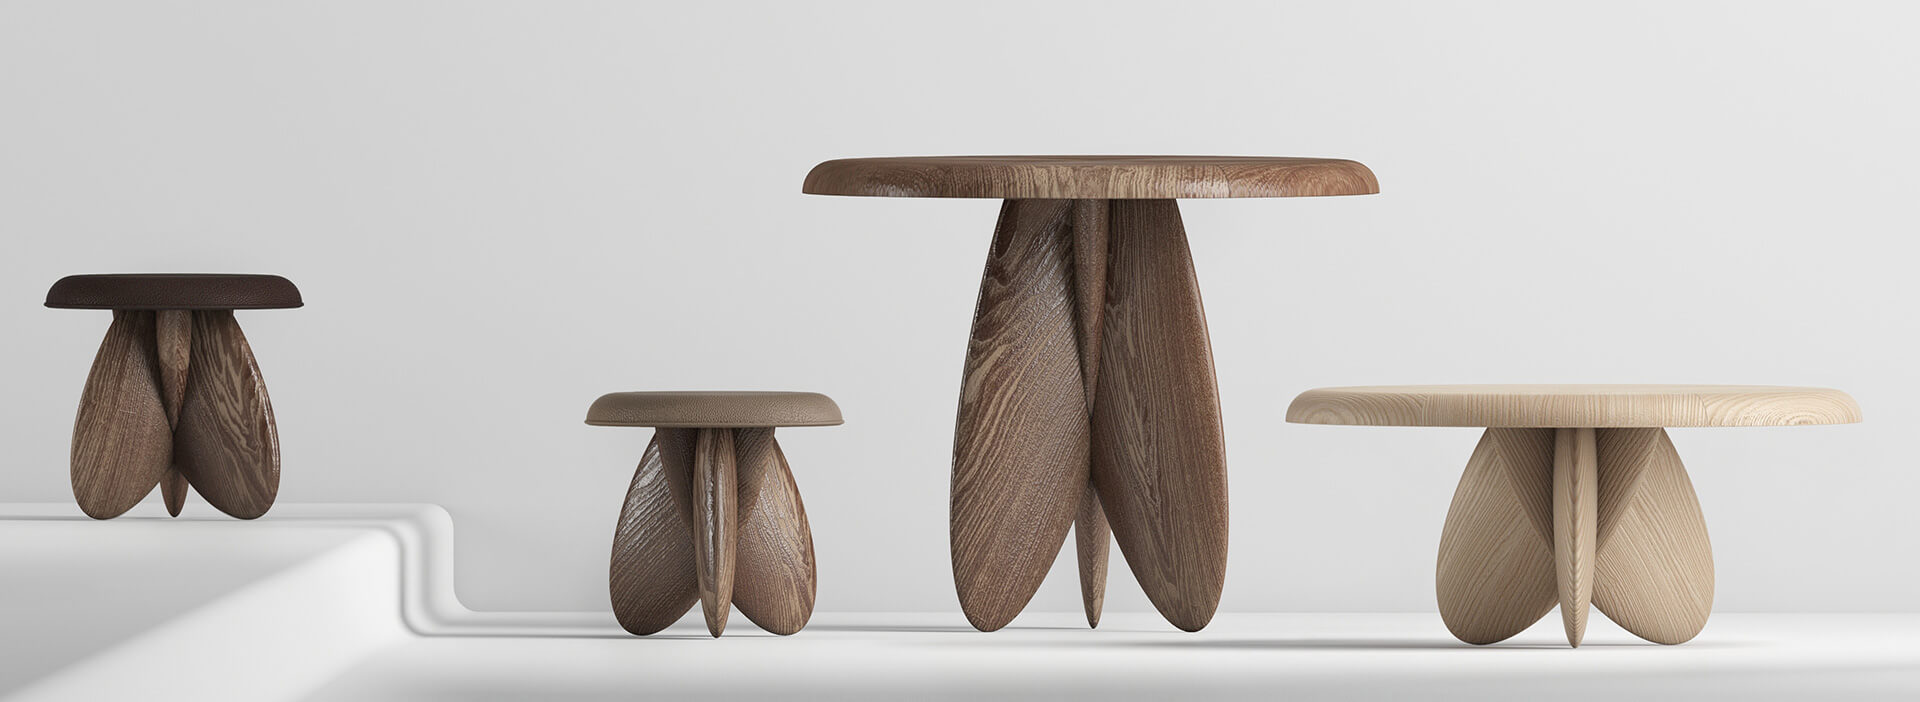 Sini Stool | Made in Turkey: Curated by Arhan Kayar | STIRworld